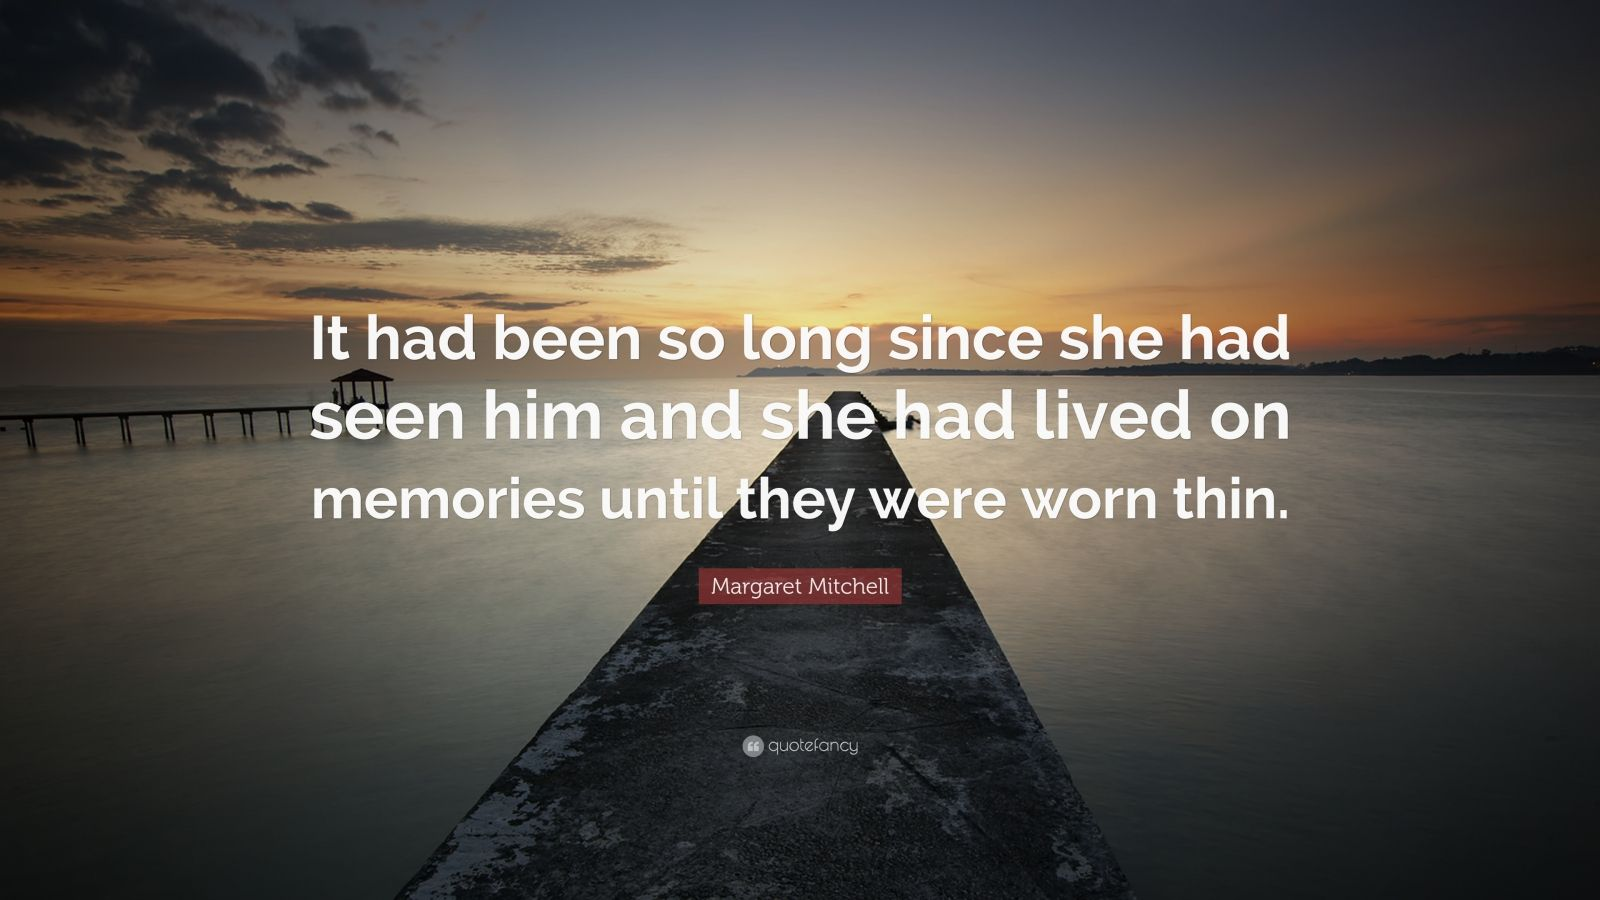 """Margaret Mitchell Quote: """"It had been so long since she had seen him and she had lived on memories until they were worn thin."""""""